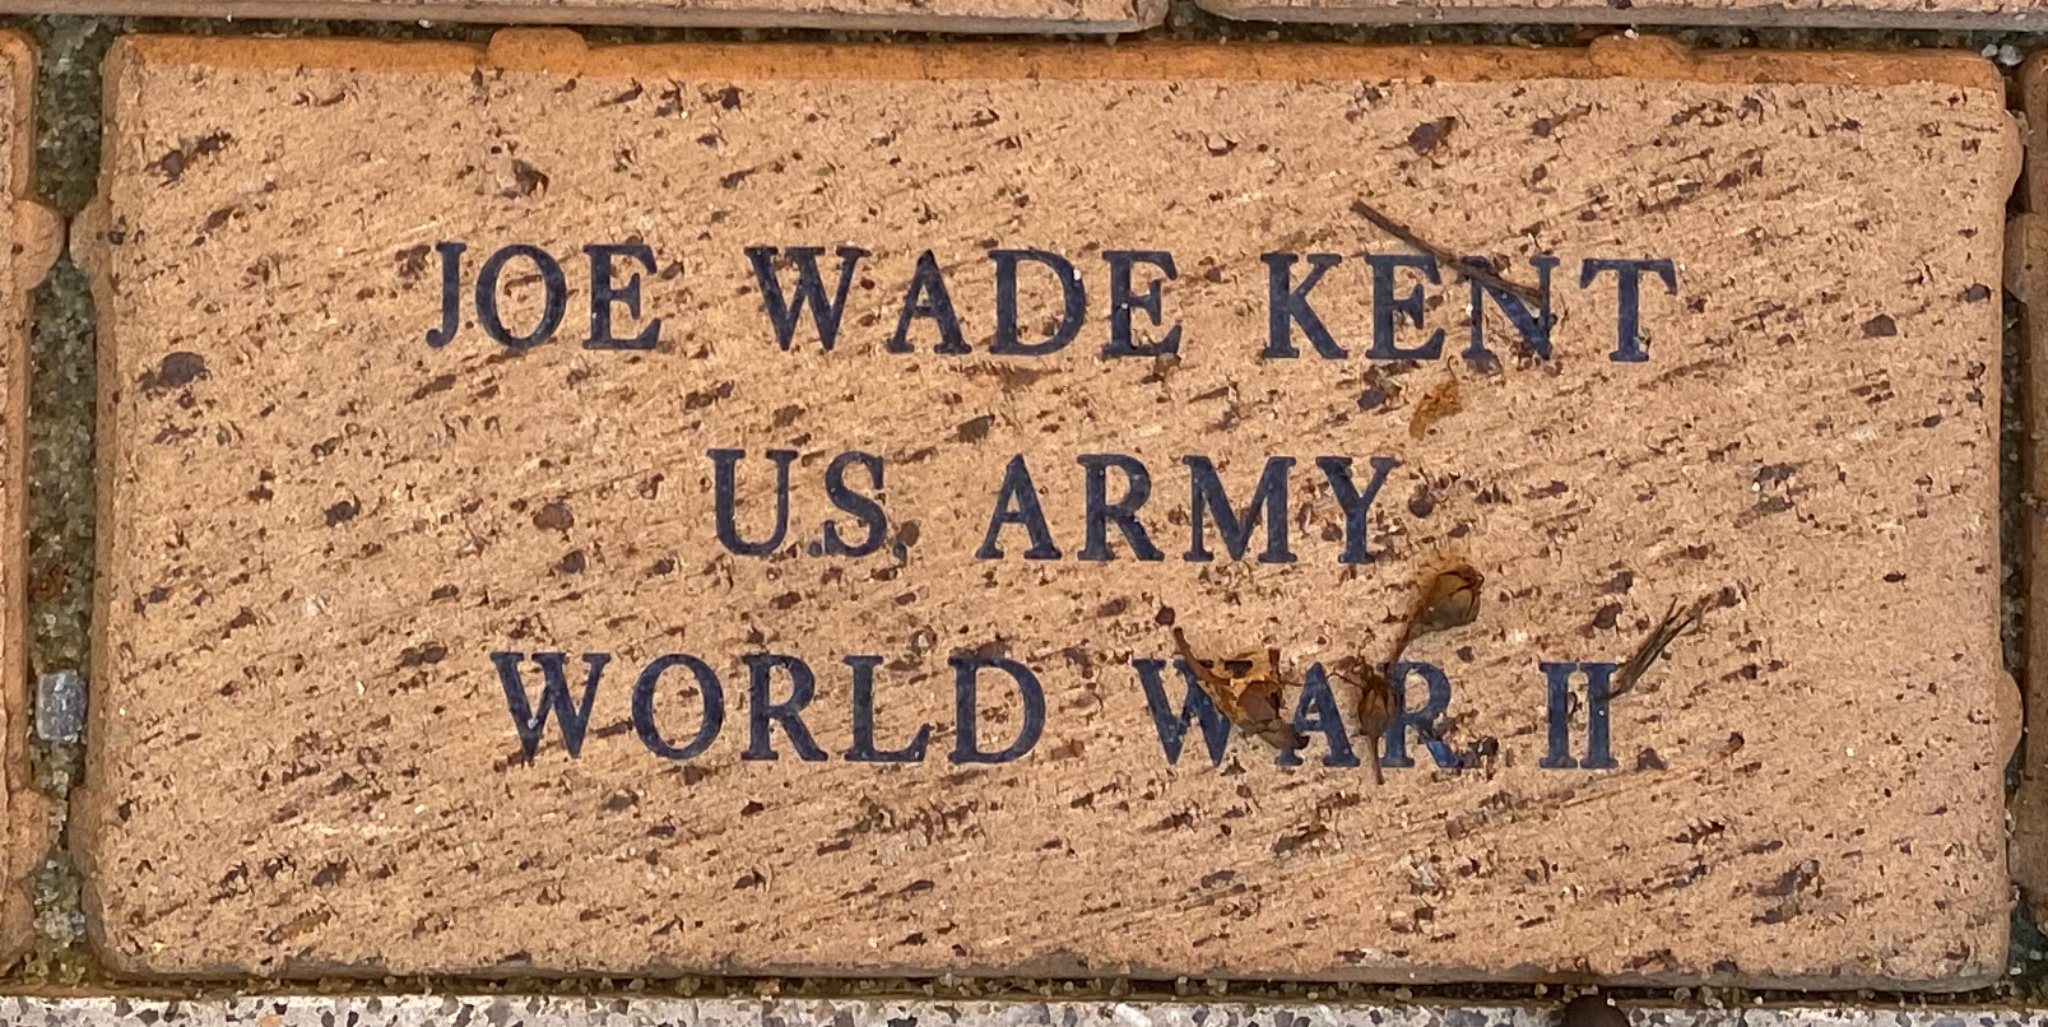 JOE WADE KENT U.S. ARMY WORLD WAR II